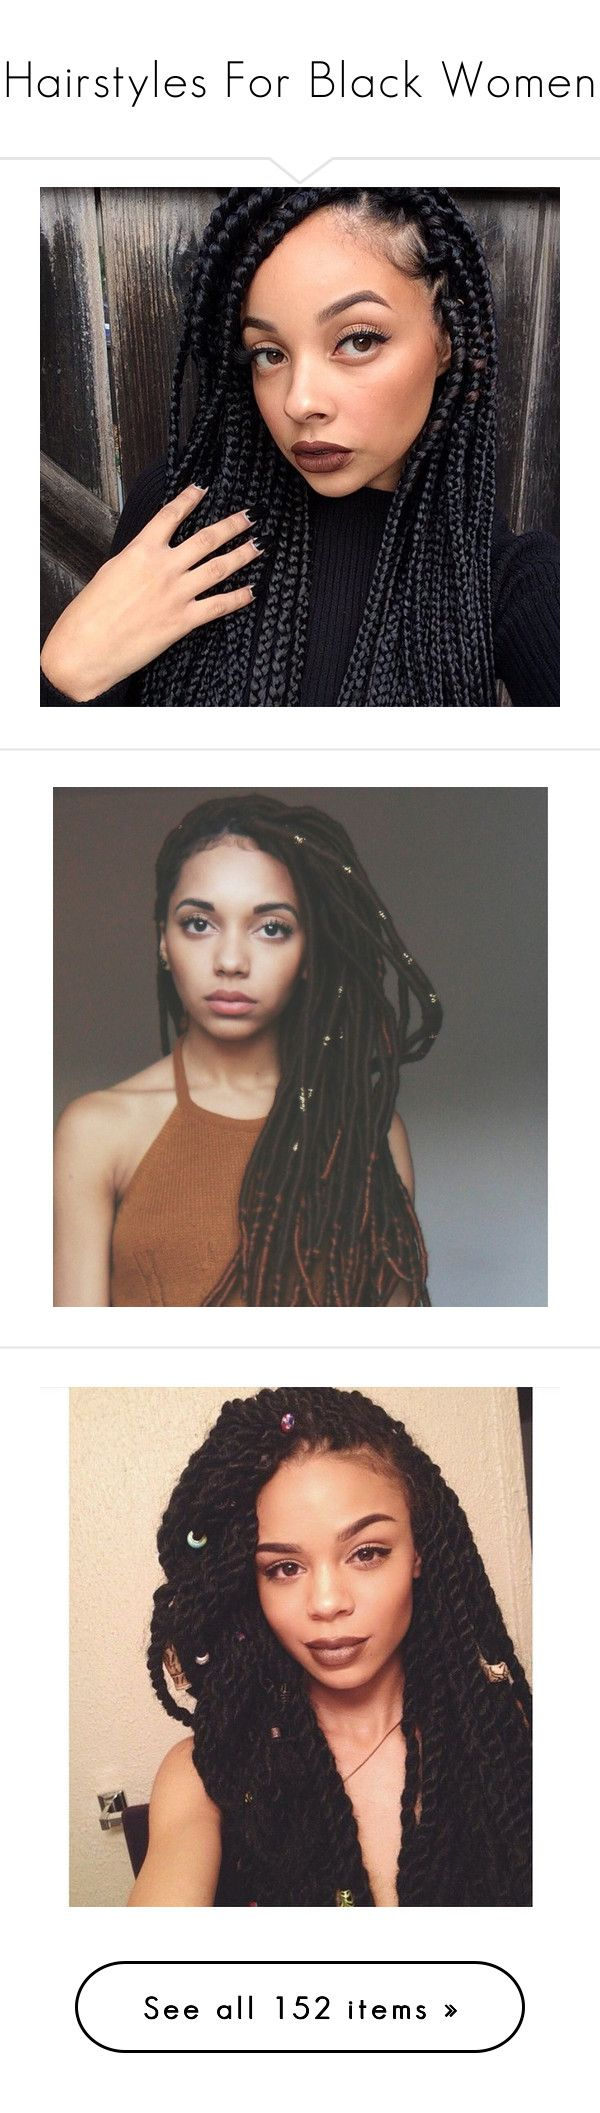 """""""Hairstyles For Black Women"""" by thecomedian ❤ liked on Polyvore featuring hair, girls, hairstyles, people, pictures, accessories, hair accessories, braids, beauty products and haircare"""